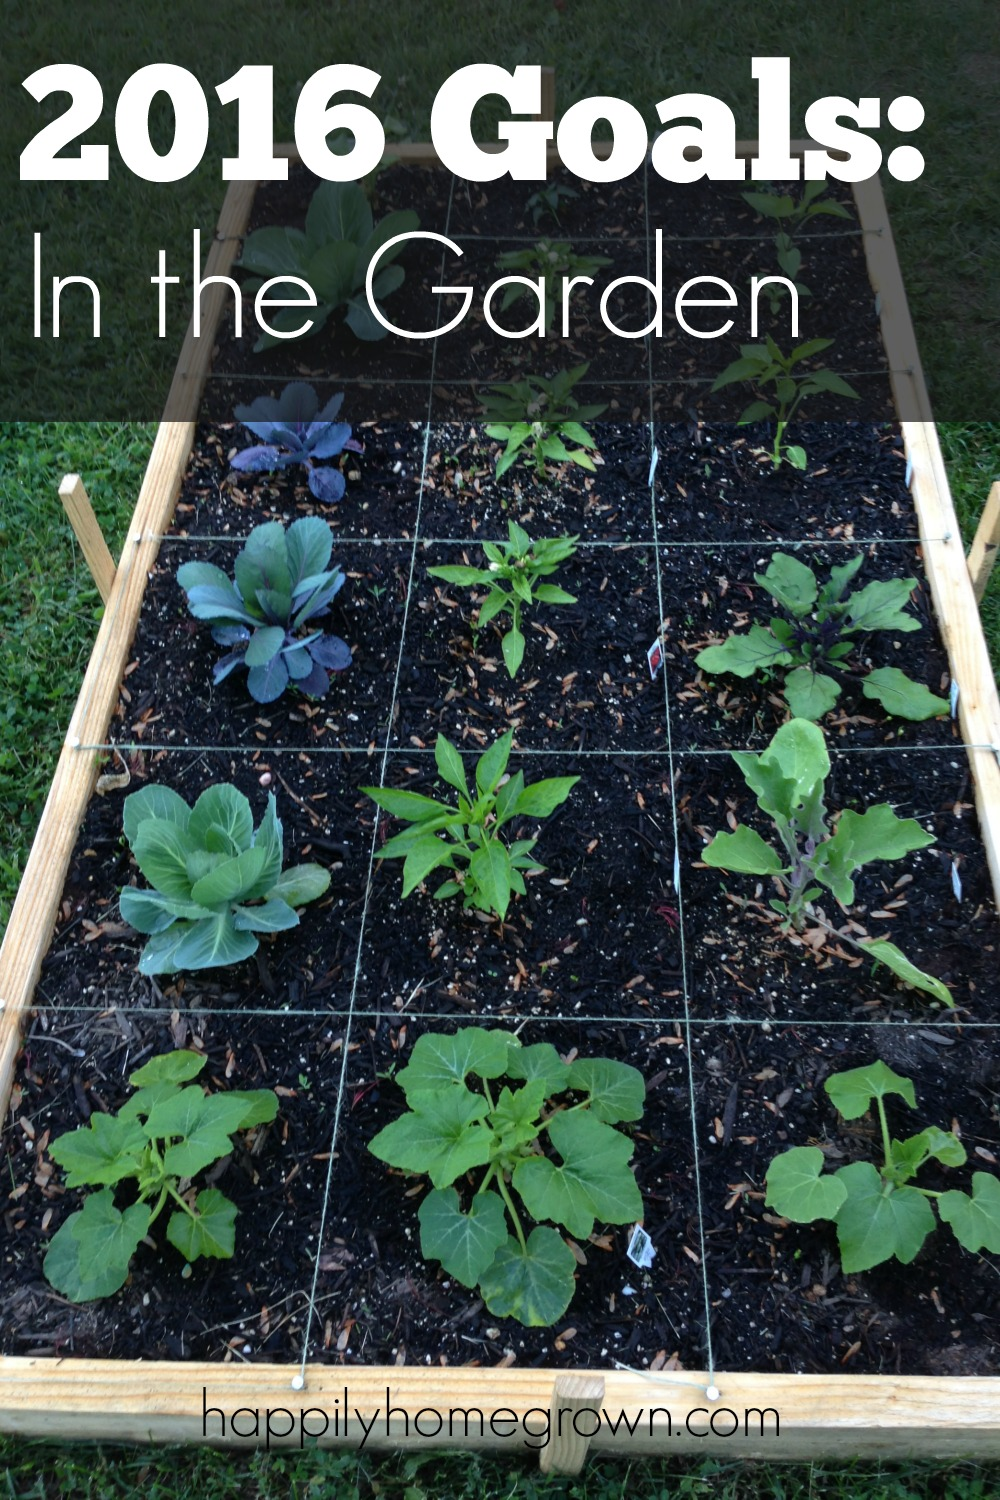 2016 goals in the garden